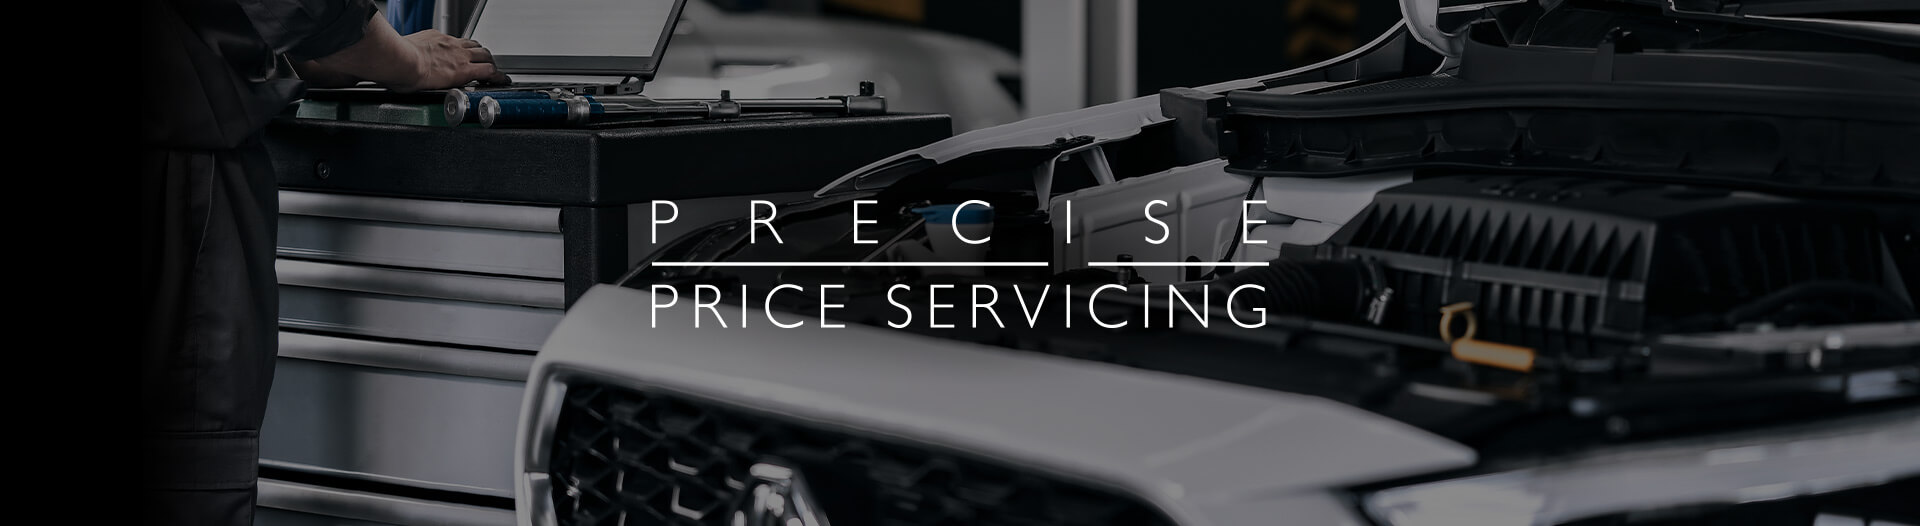 MG Motor Australia Precise Price Servicing. Find out more.